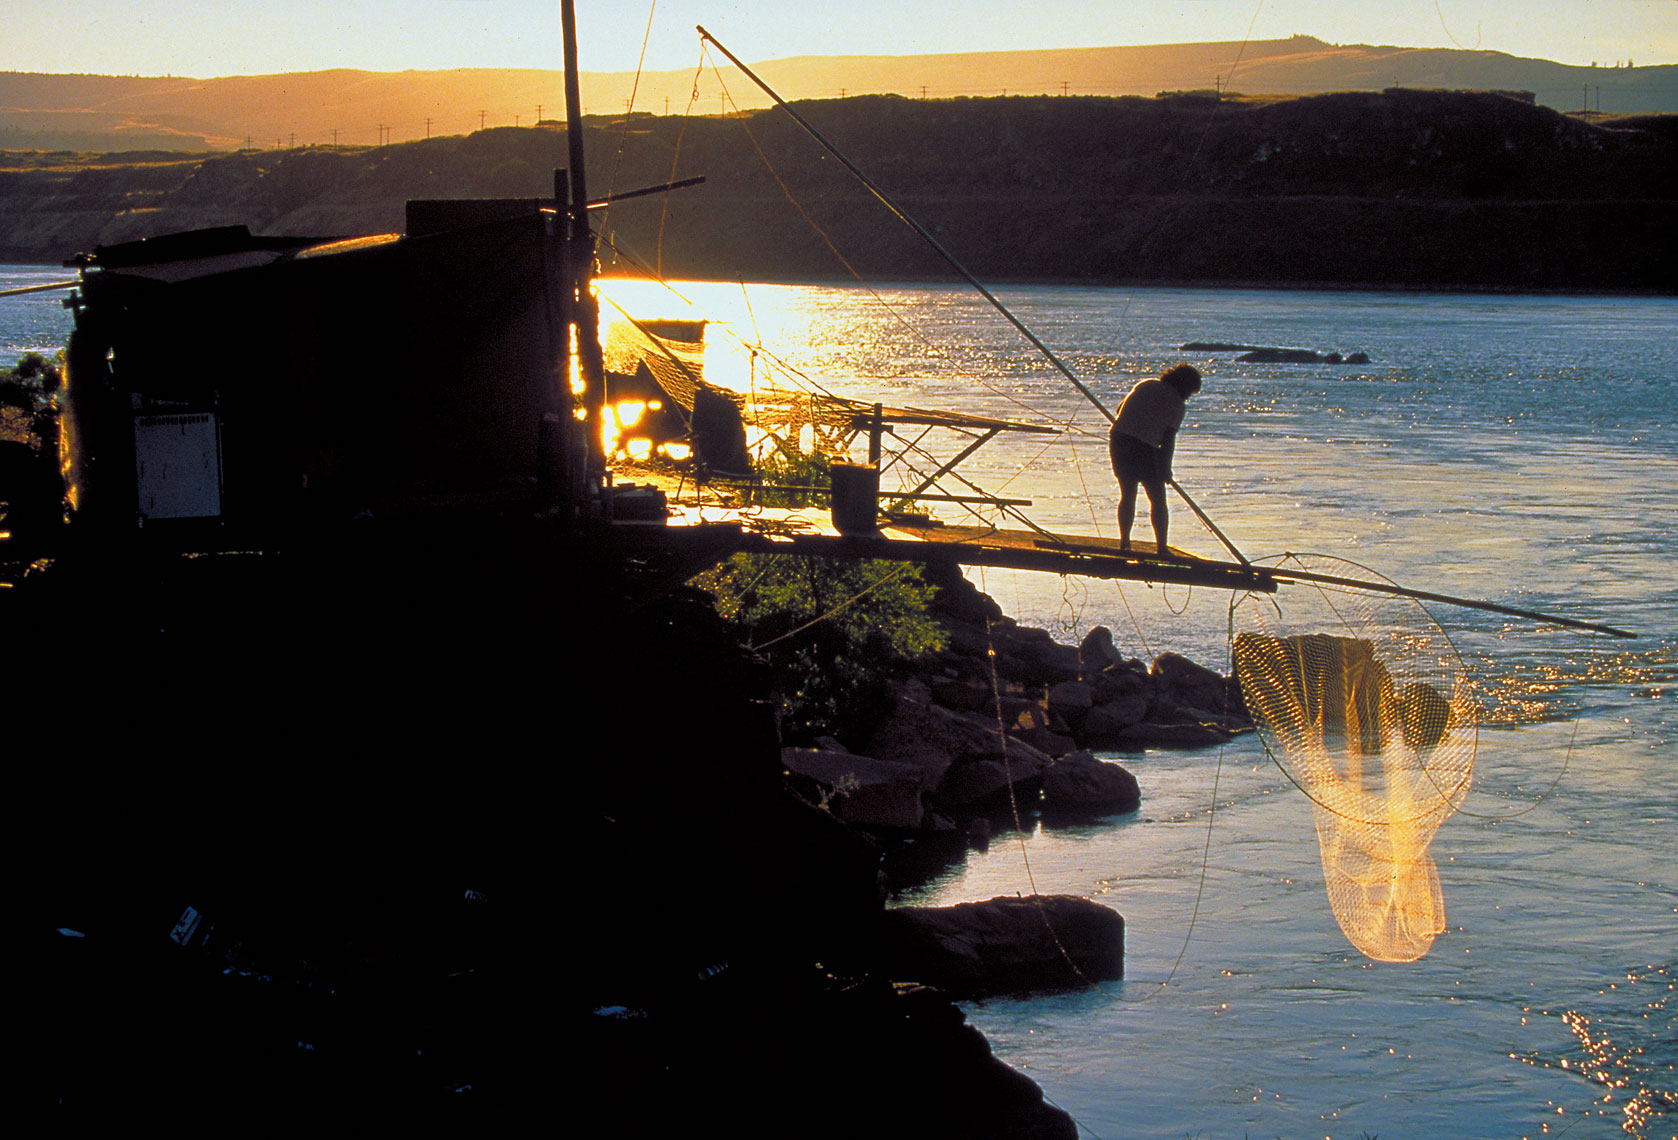 010-011_fishingnet-copy